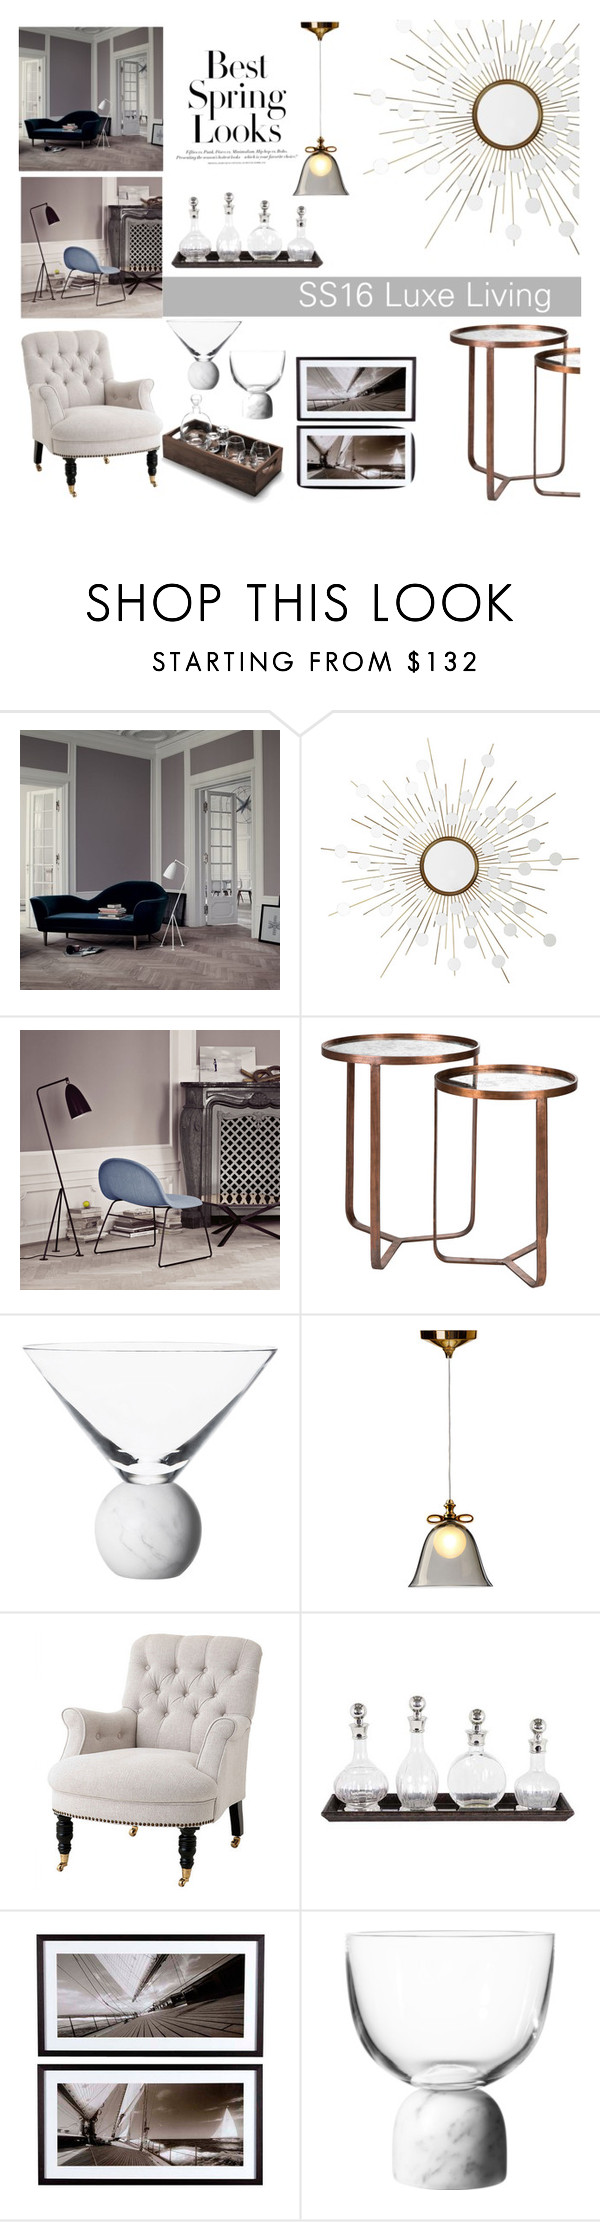 """""""Houseology SS16 Luxe Living"""" by thehouseologists ❤ liked on Polyvore featuring interior, interiors, interior design, home, home decor, interior decorating, Gubi, Eichholtz, H&M and Lee Broom"""